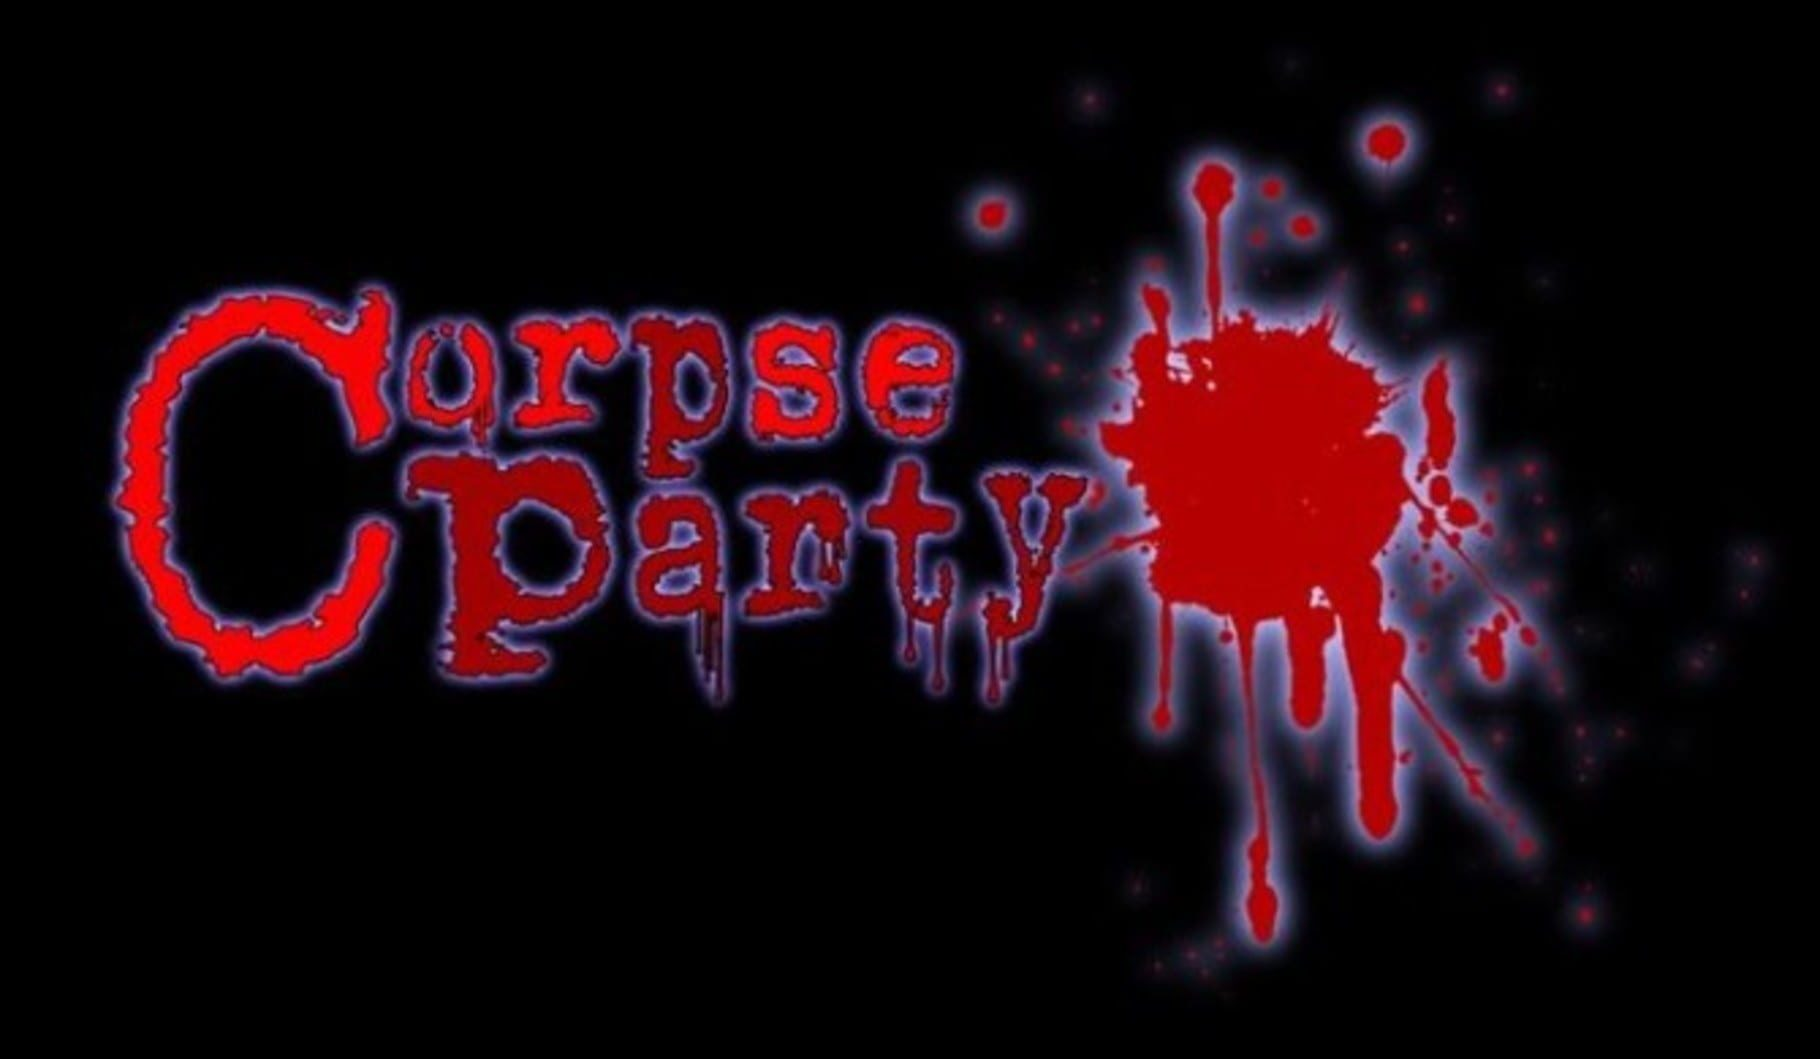 Corpse Party Steam Key GLOBAL